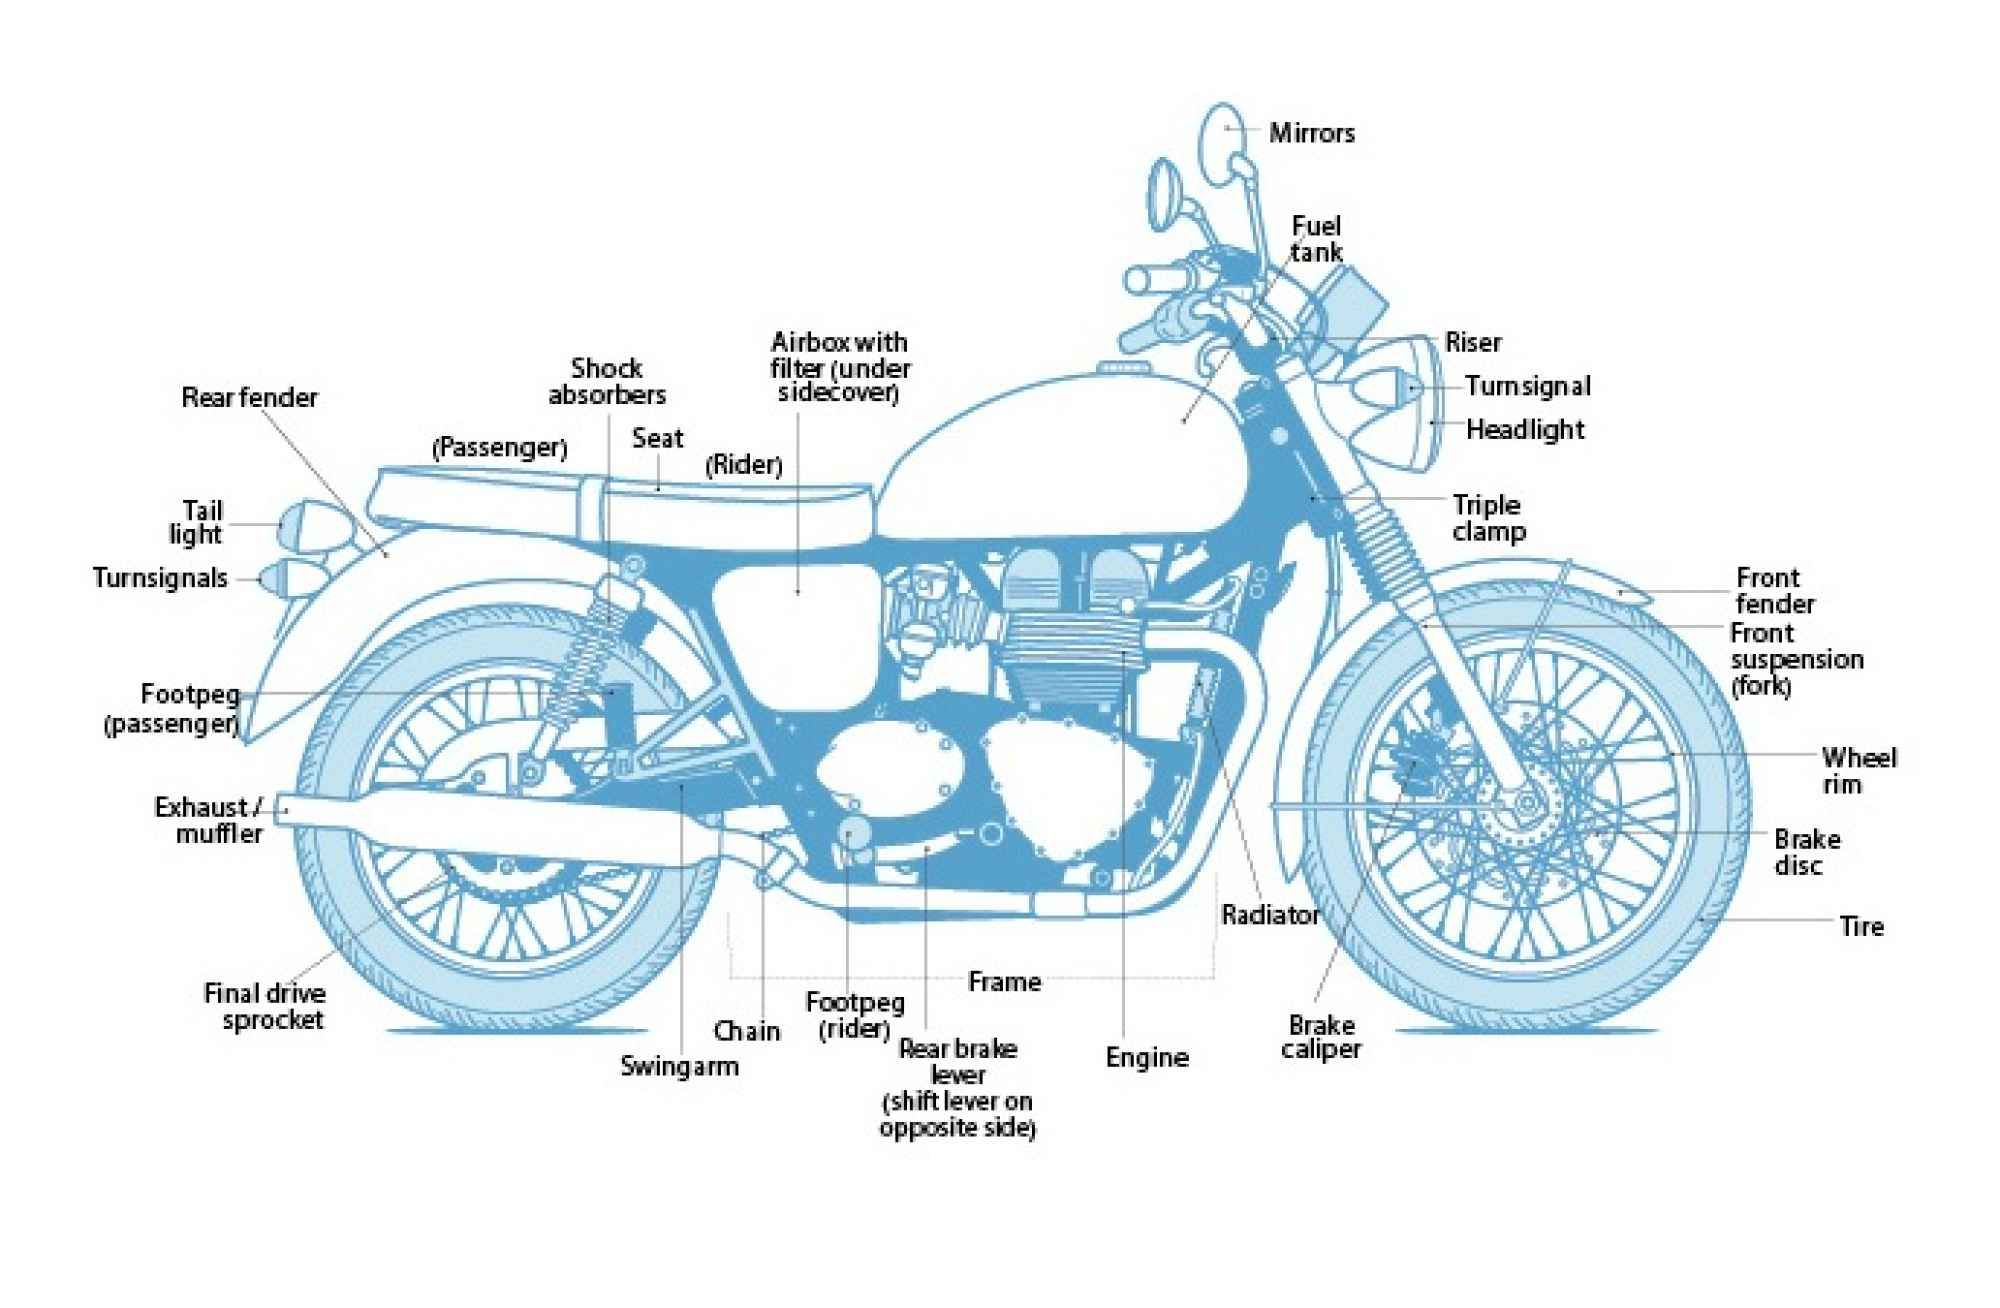 small resolution of motorcycle diagram motorcycles cafe racer bikes motorcycle harley davidson motorcycle engine diagram harley davidson motorcycle diagrams